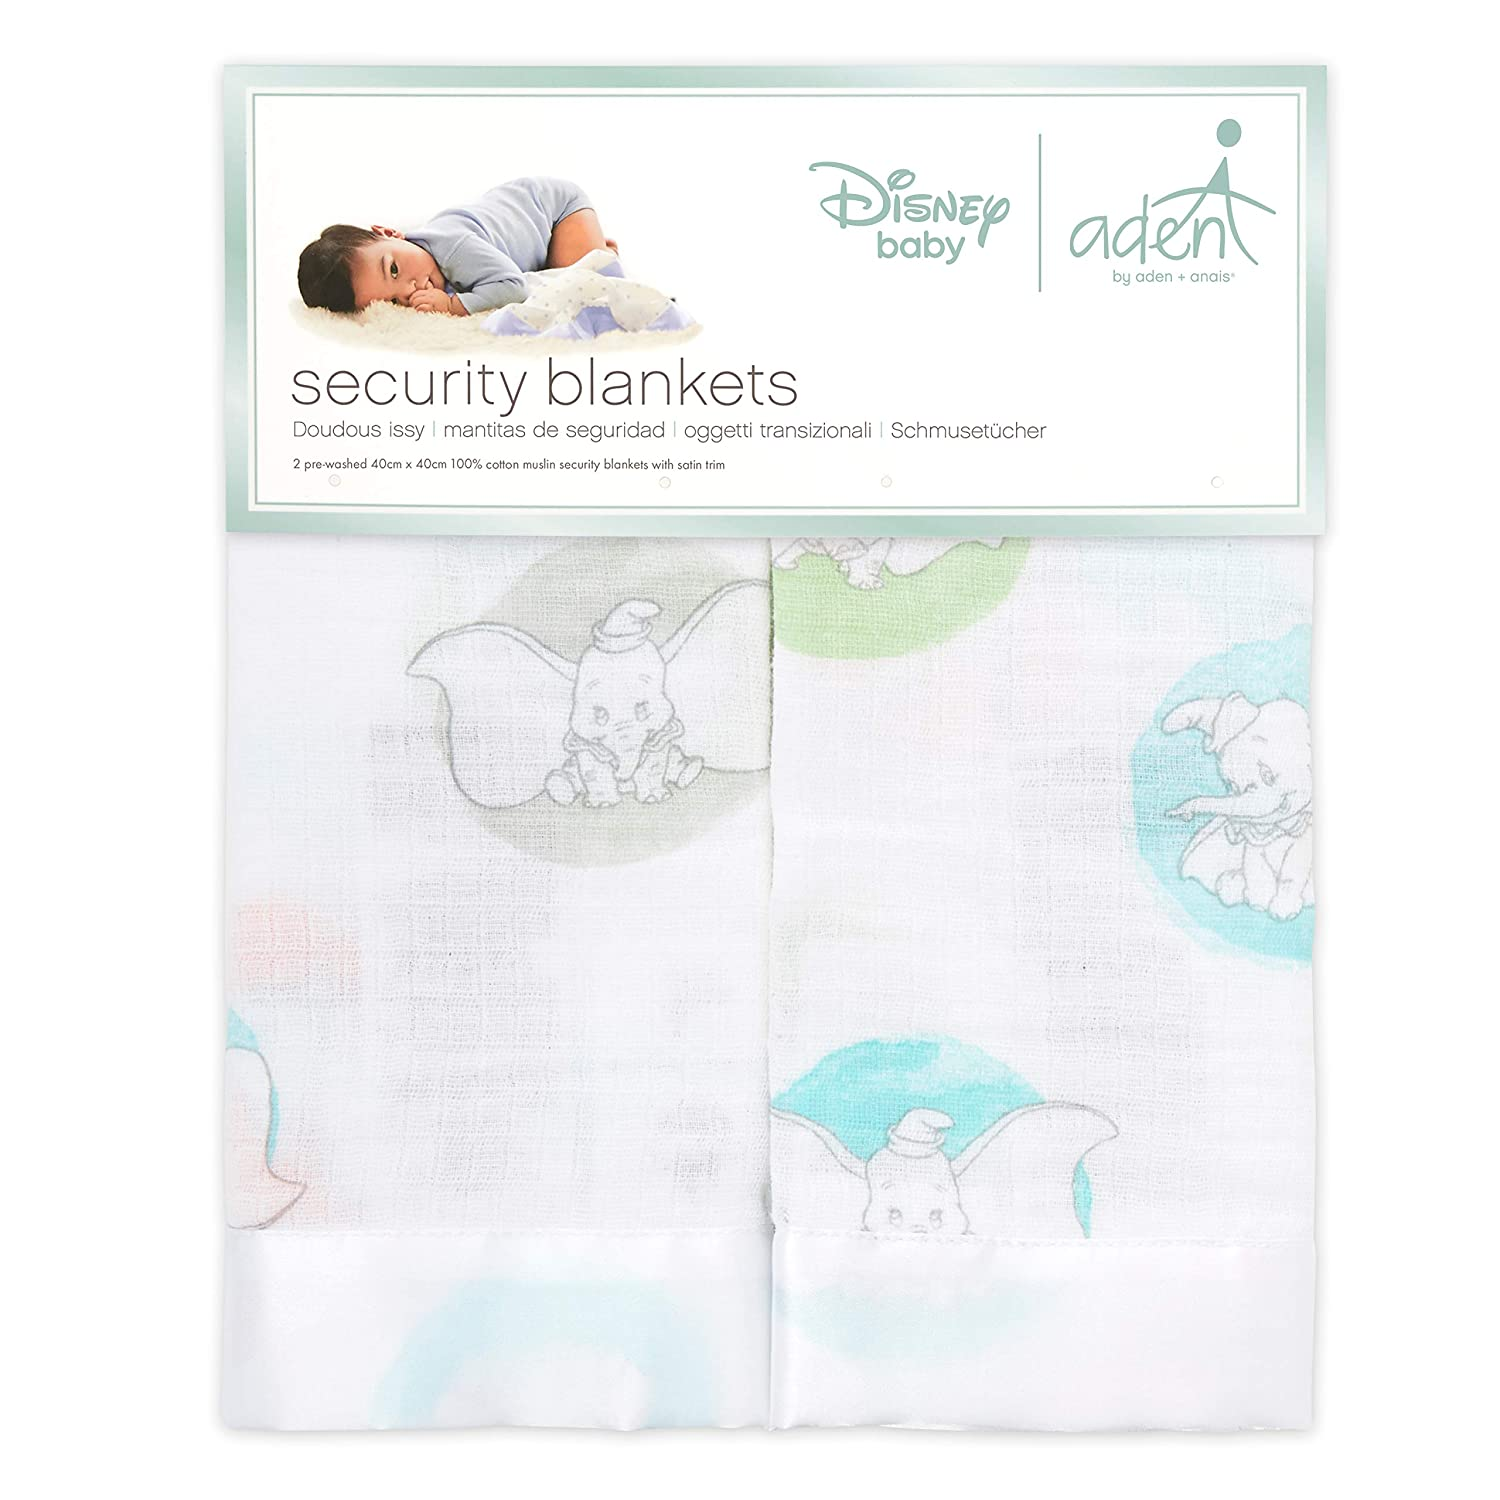 anais issie security blanket aden 40cm X 40cm 2 pack 100/% cotton muslin with satin trim night sky reverie